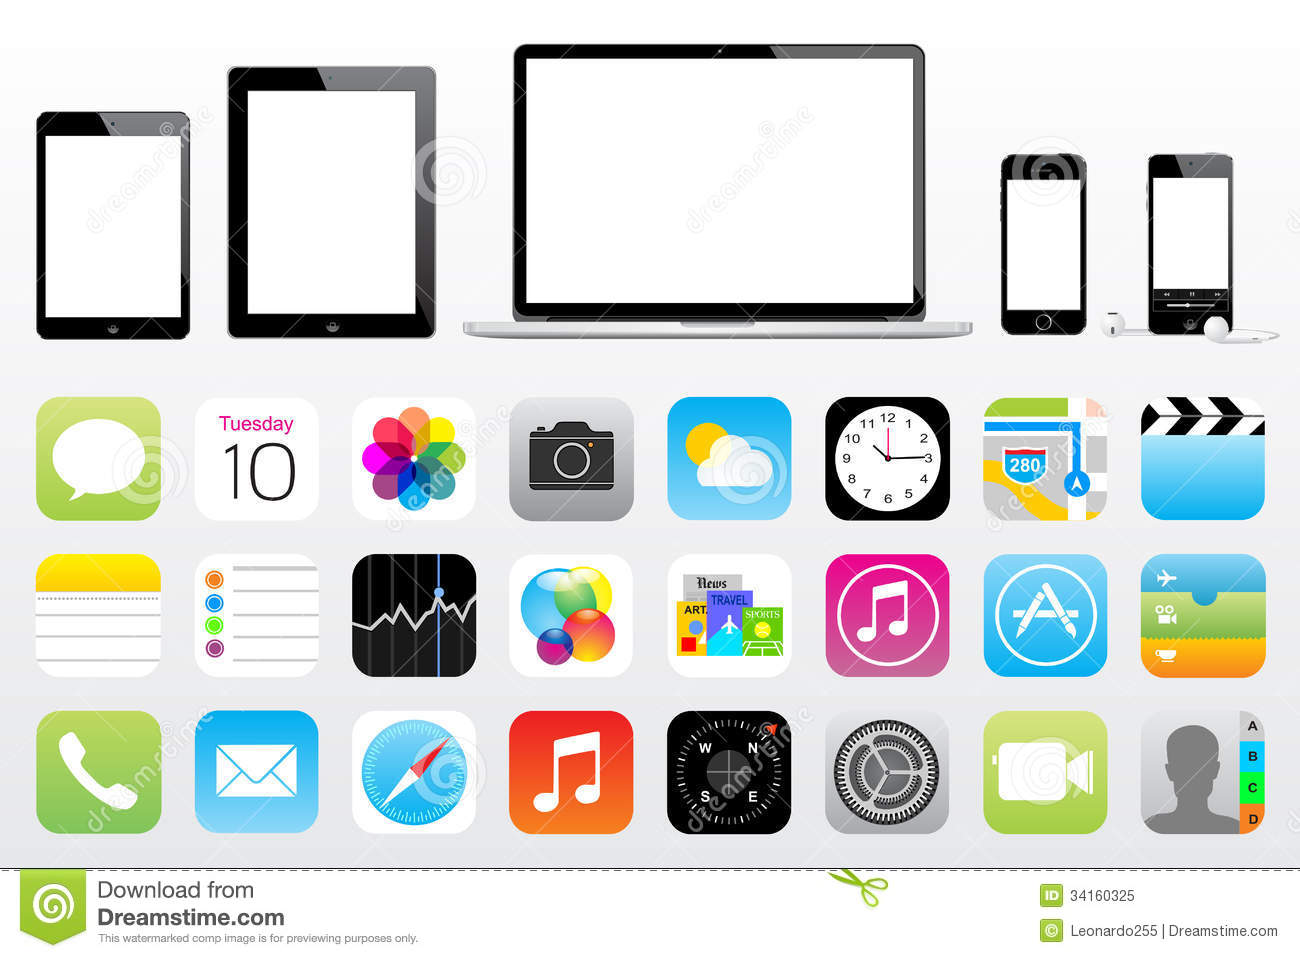 94+ Printable Iphone App Icons - Ios Printable Iphone App ...